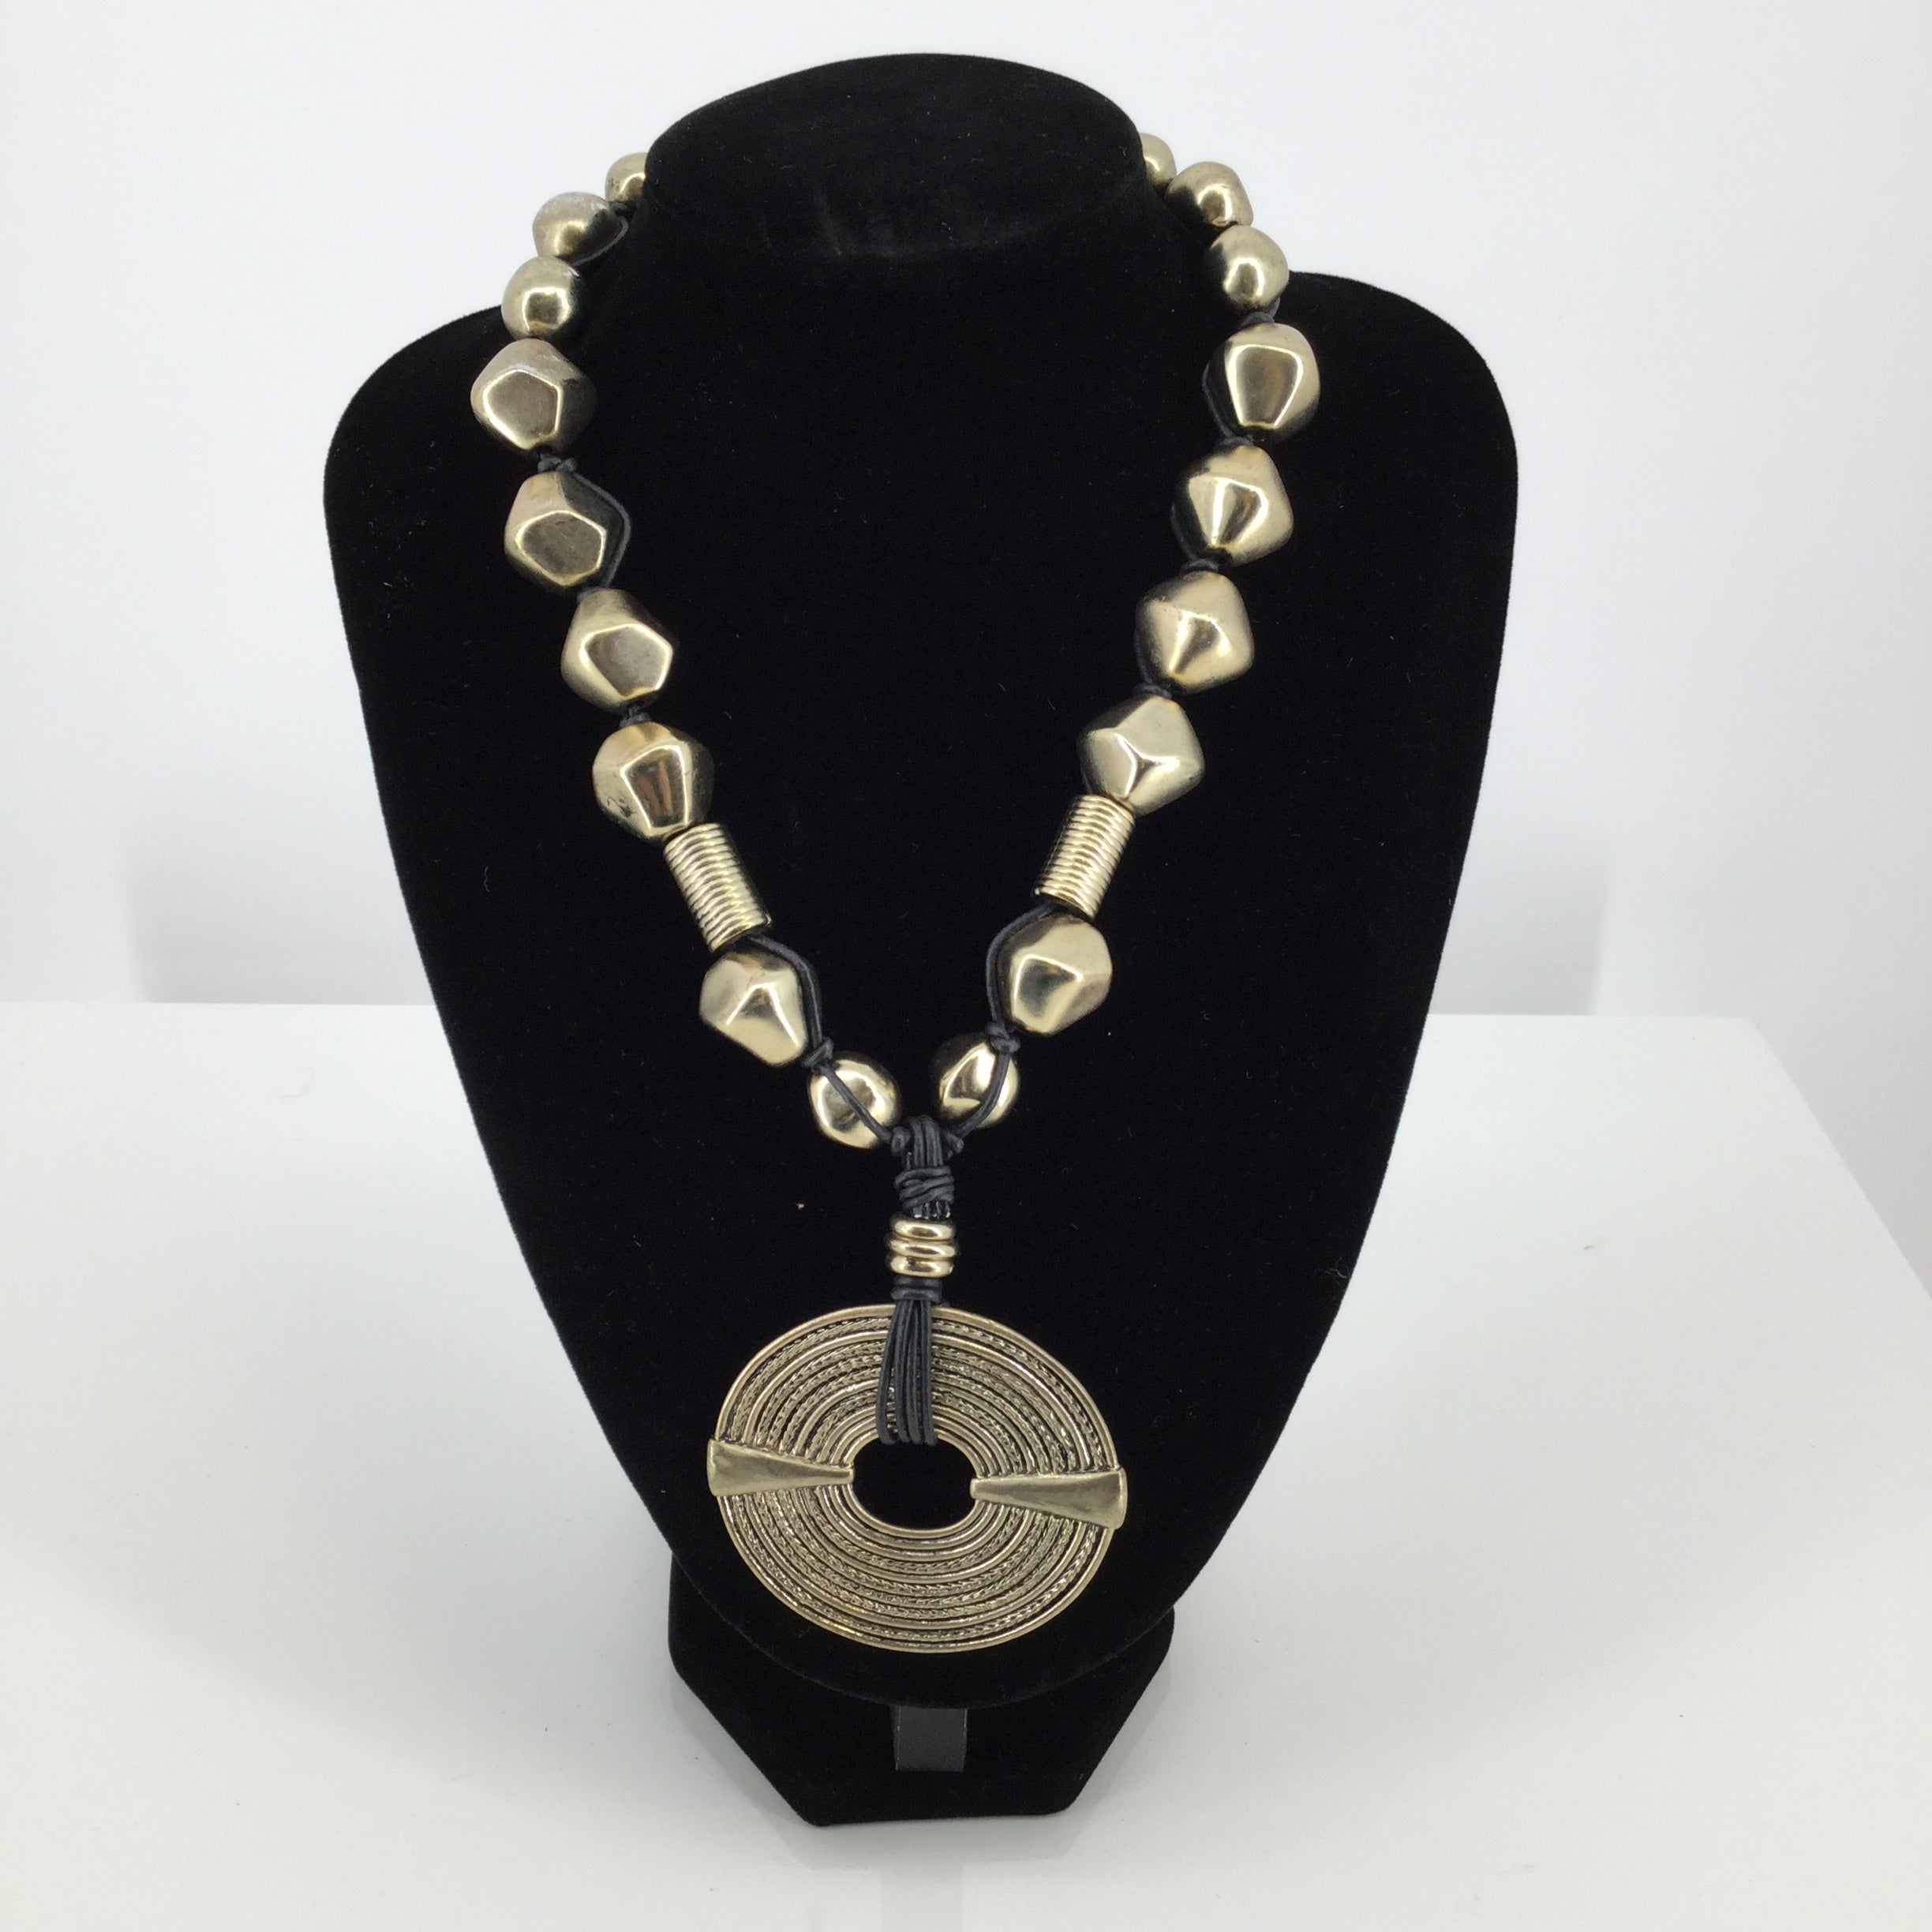 JEWELRY, - ADJUSTABLE GOLD AND LEATHER NECKLACE ACCENTED WITH A LARGE GOLD DISC. 18-20